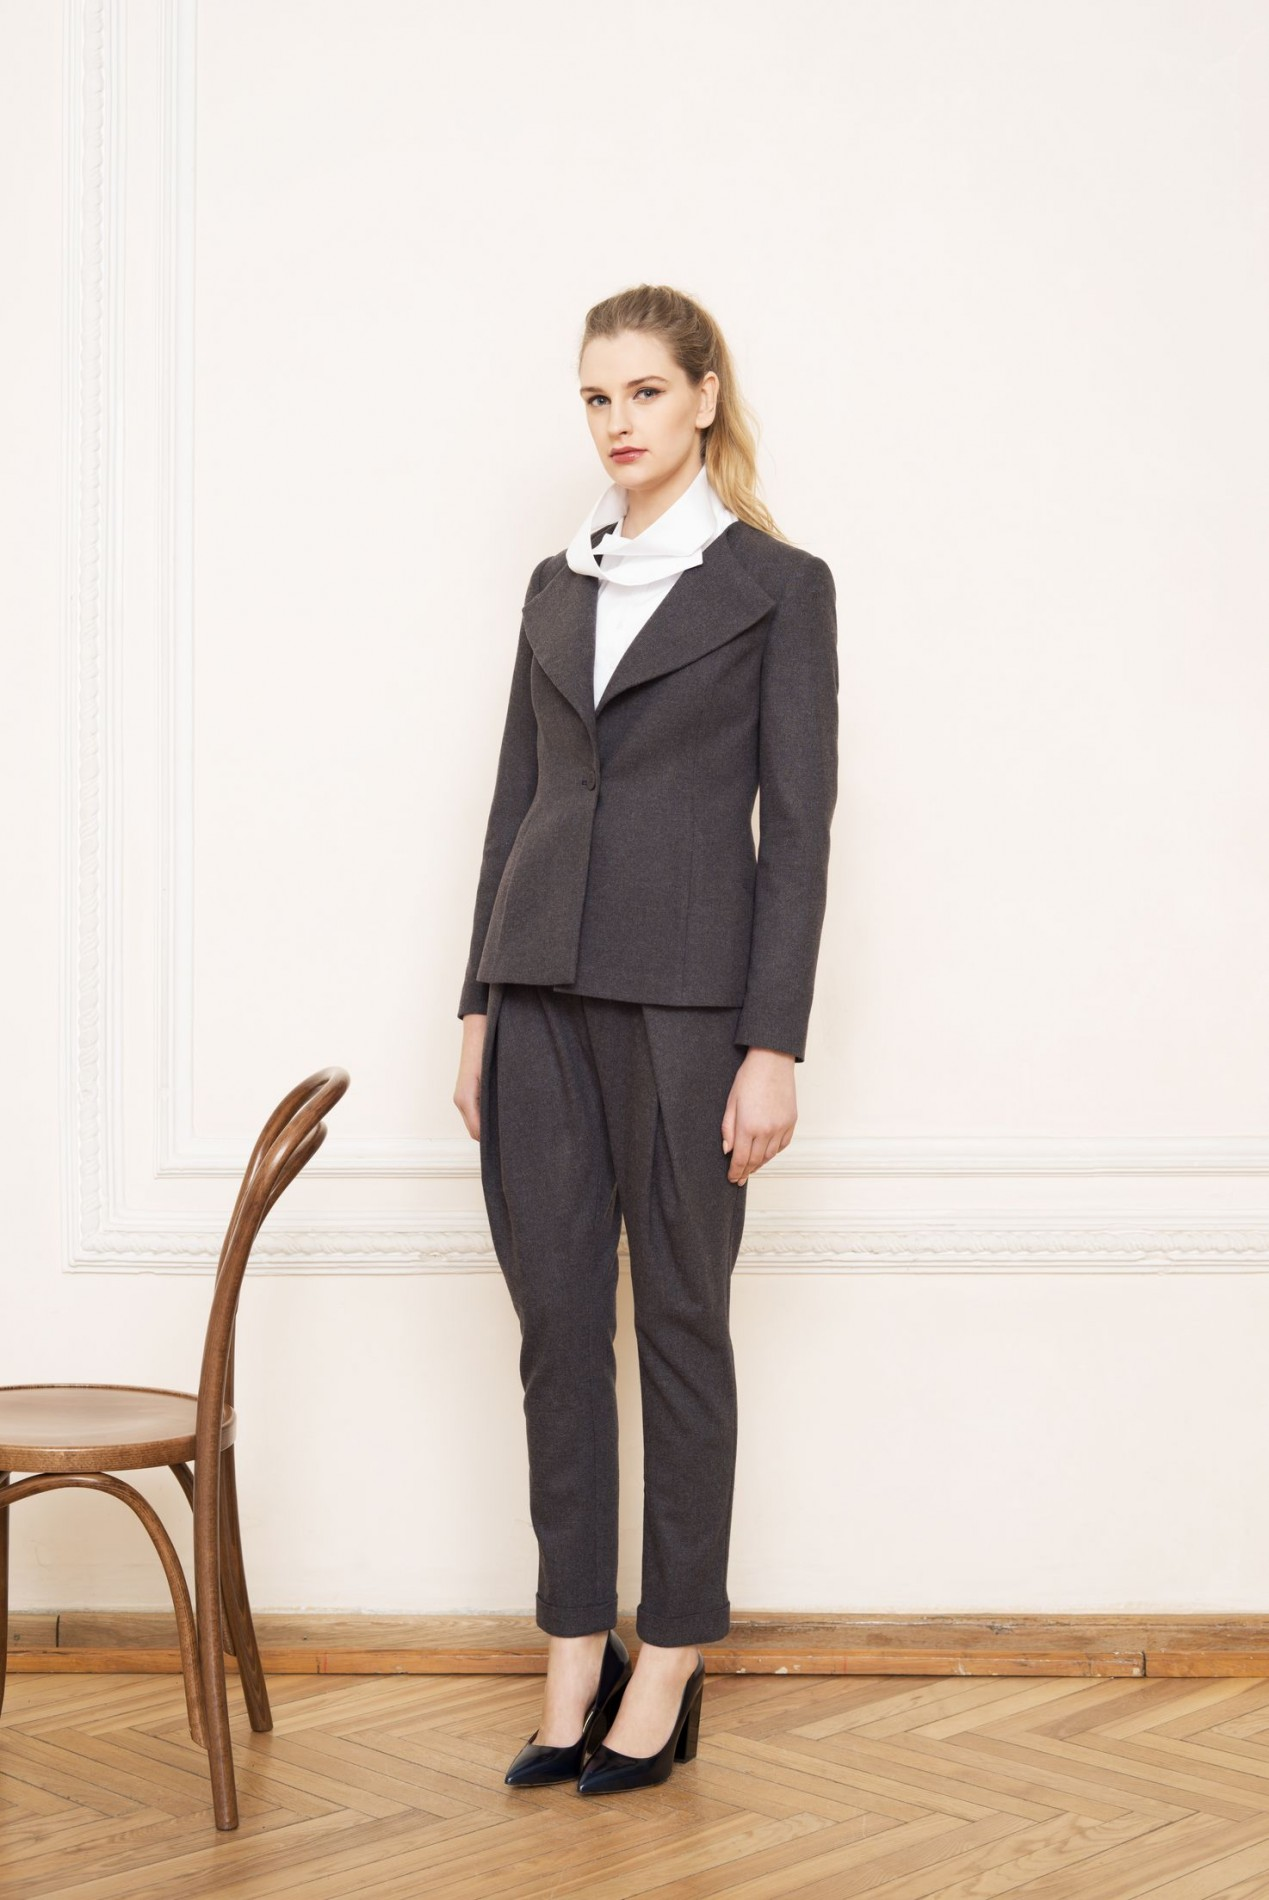 ALPS Elegant Jacket and RILA High-neck Shirt and ALPS Pleat Trousers